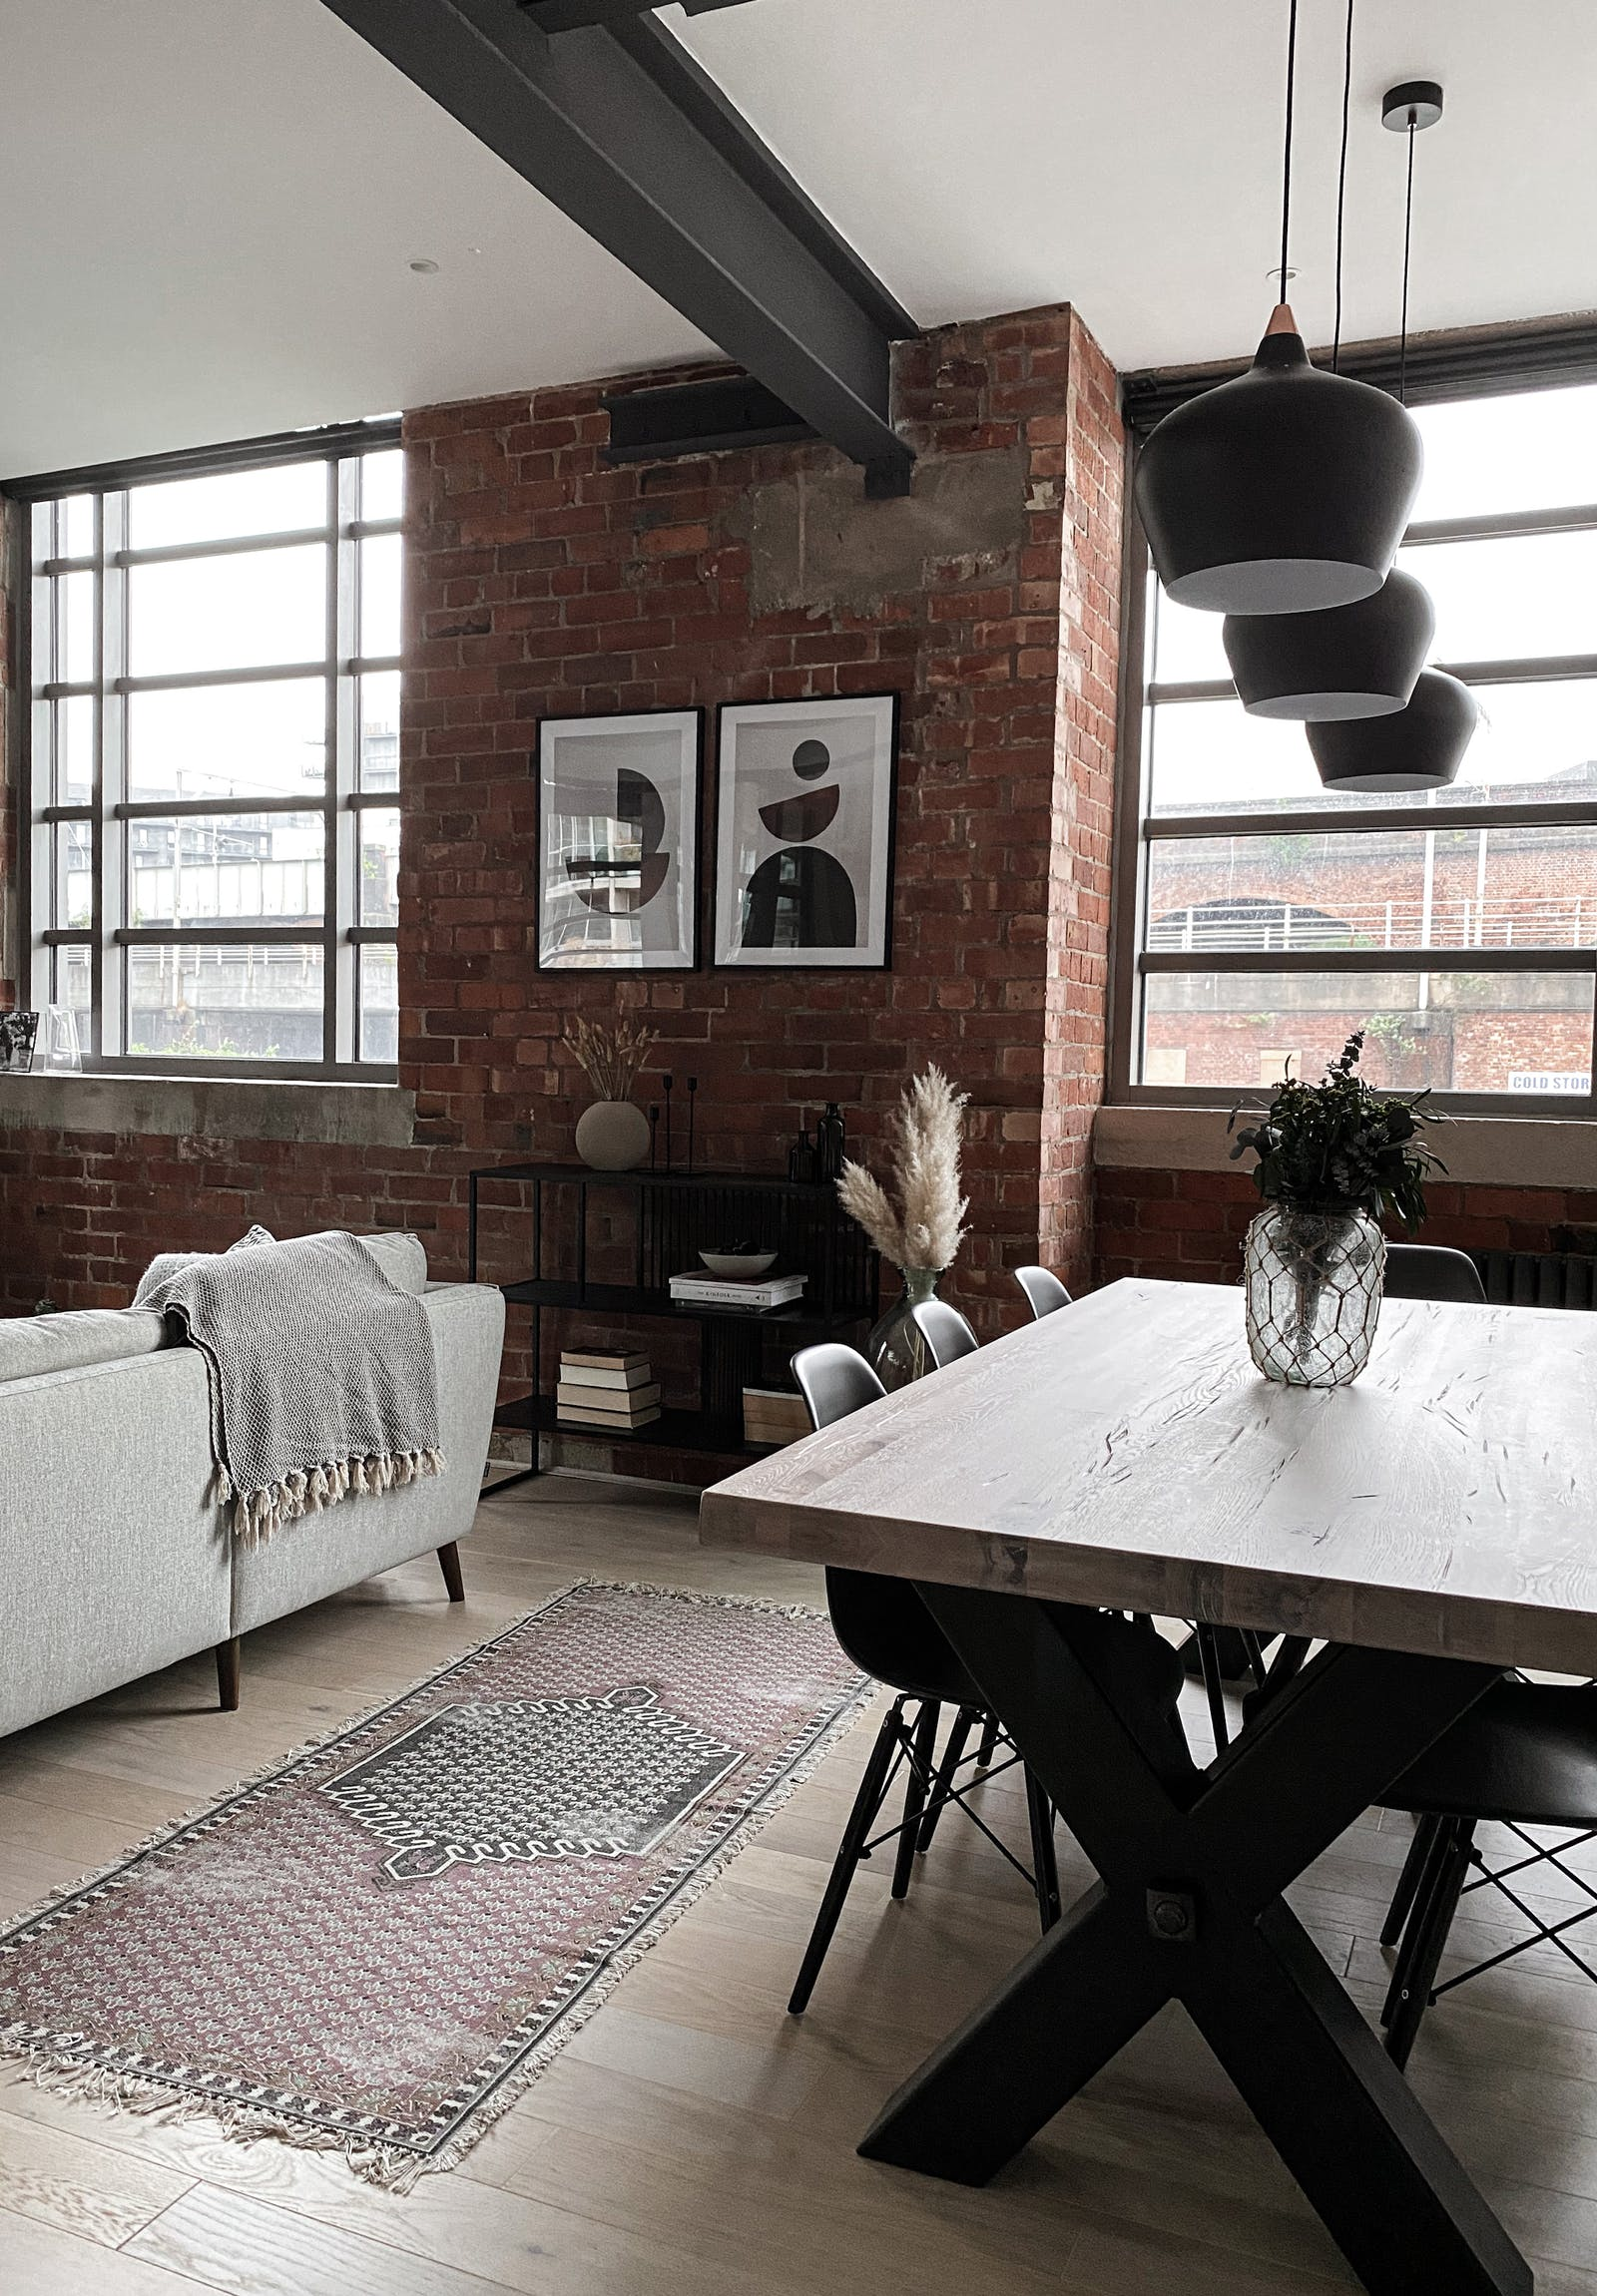 Open space living and dining room with an exposed brick wall